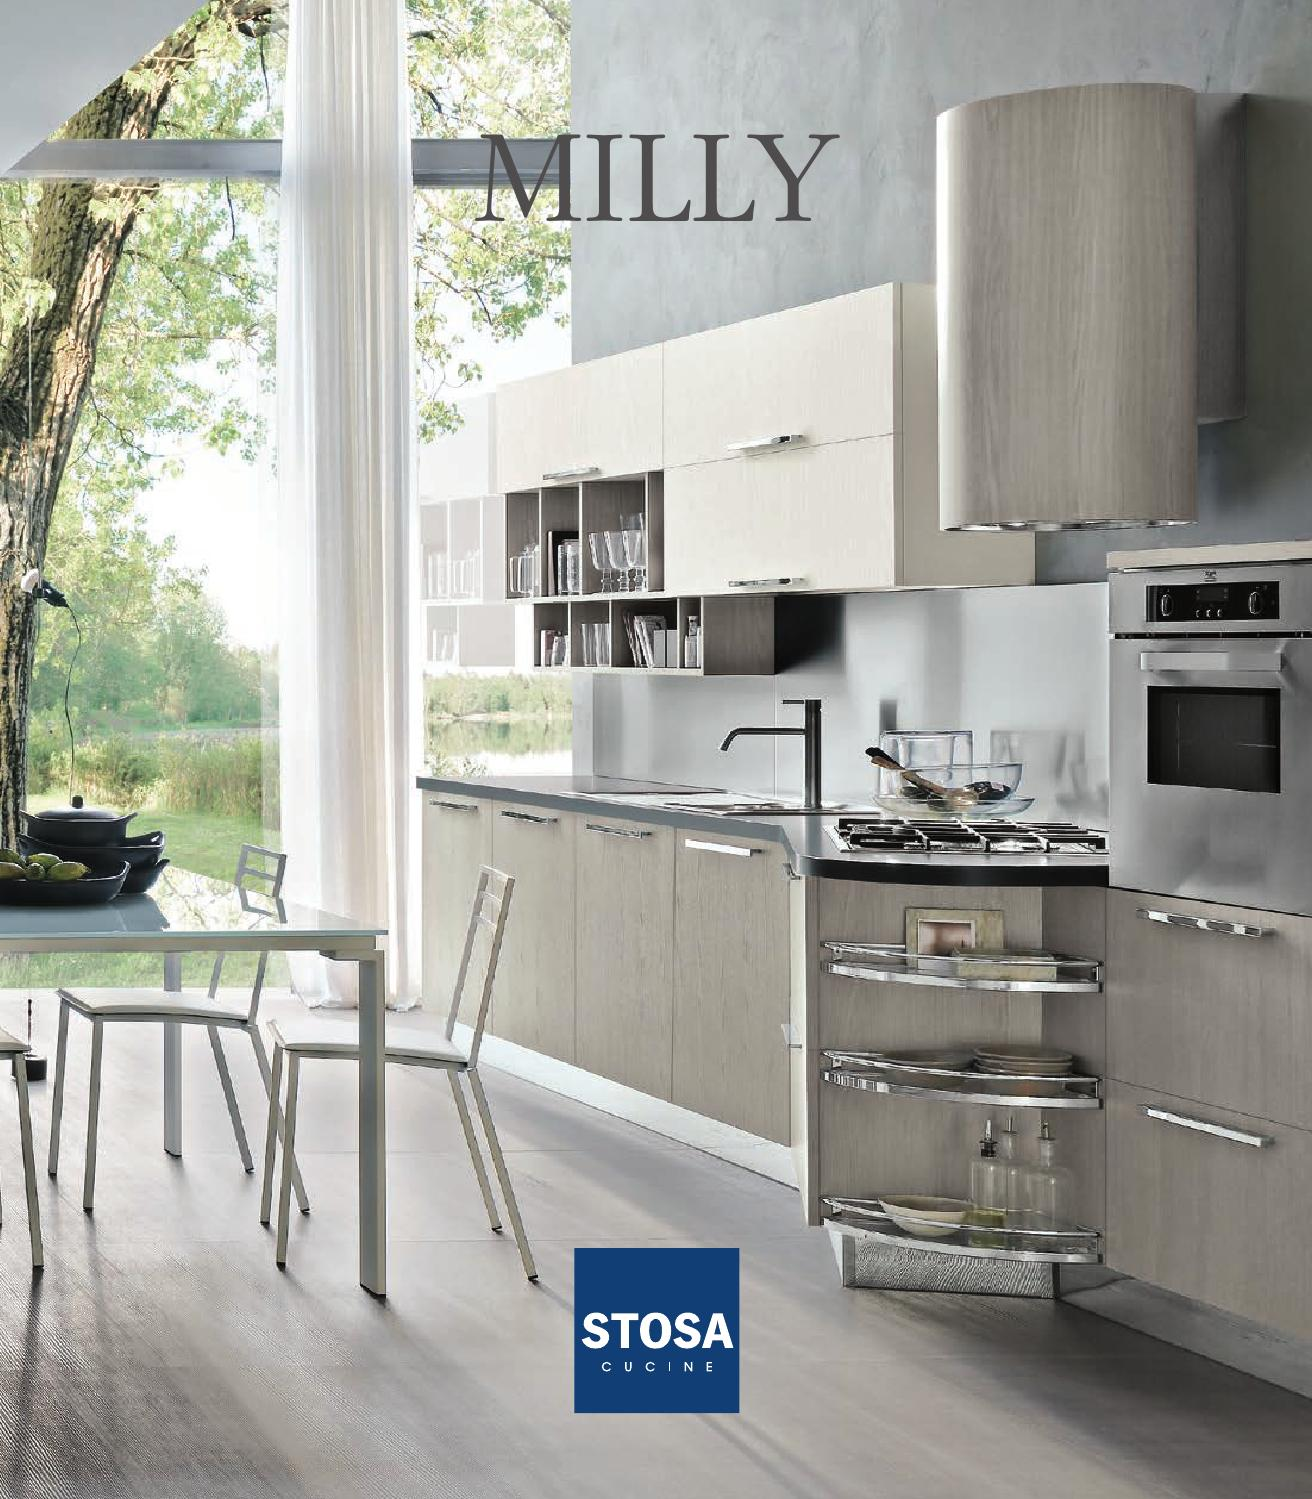 Catalogo cucine moderne stosa milly by STOSA Cucine - issuu